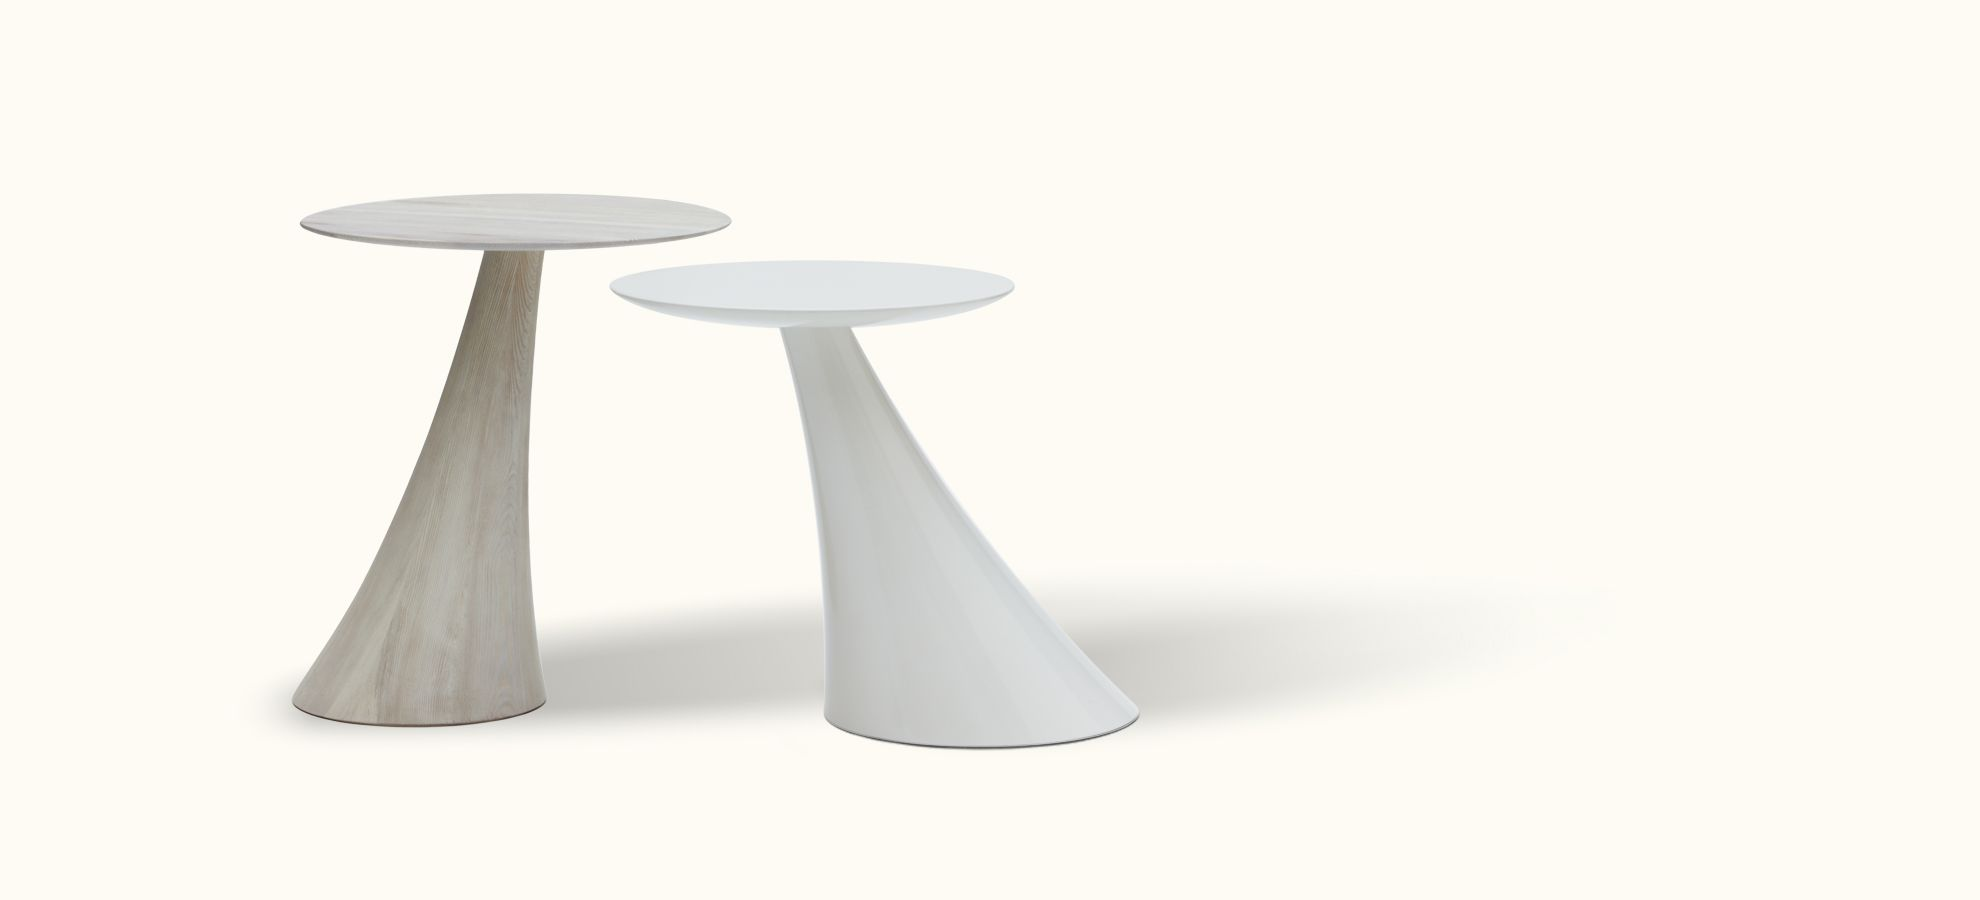 Table DLM Damien Langlois-Meurinne happy together (wood)